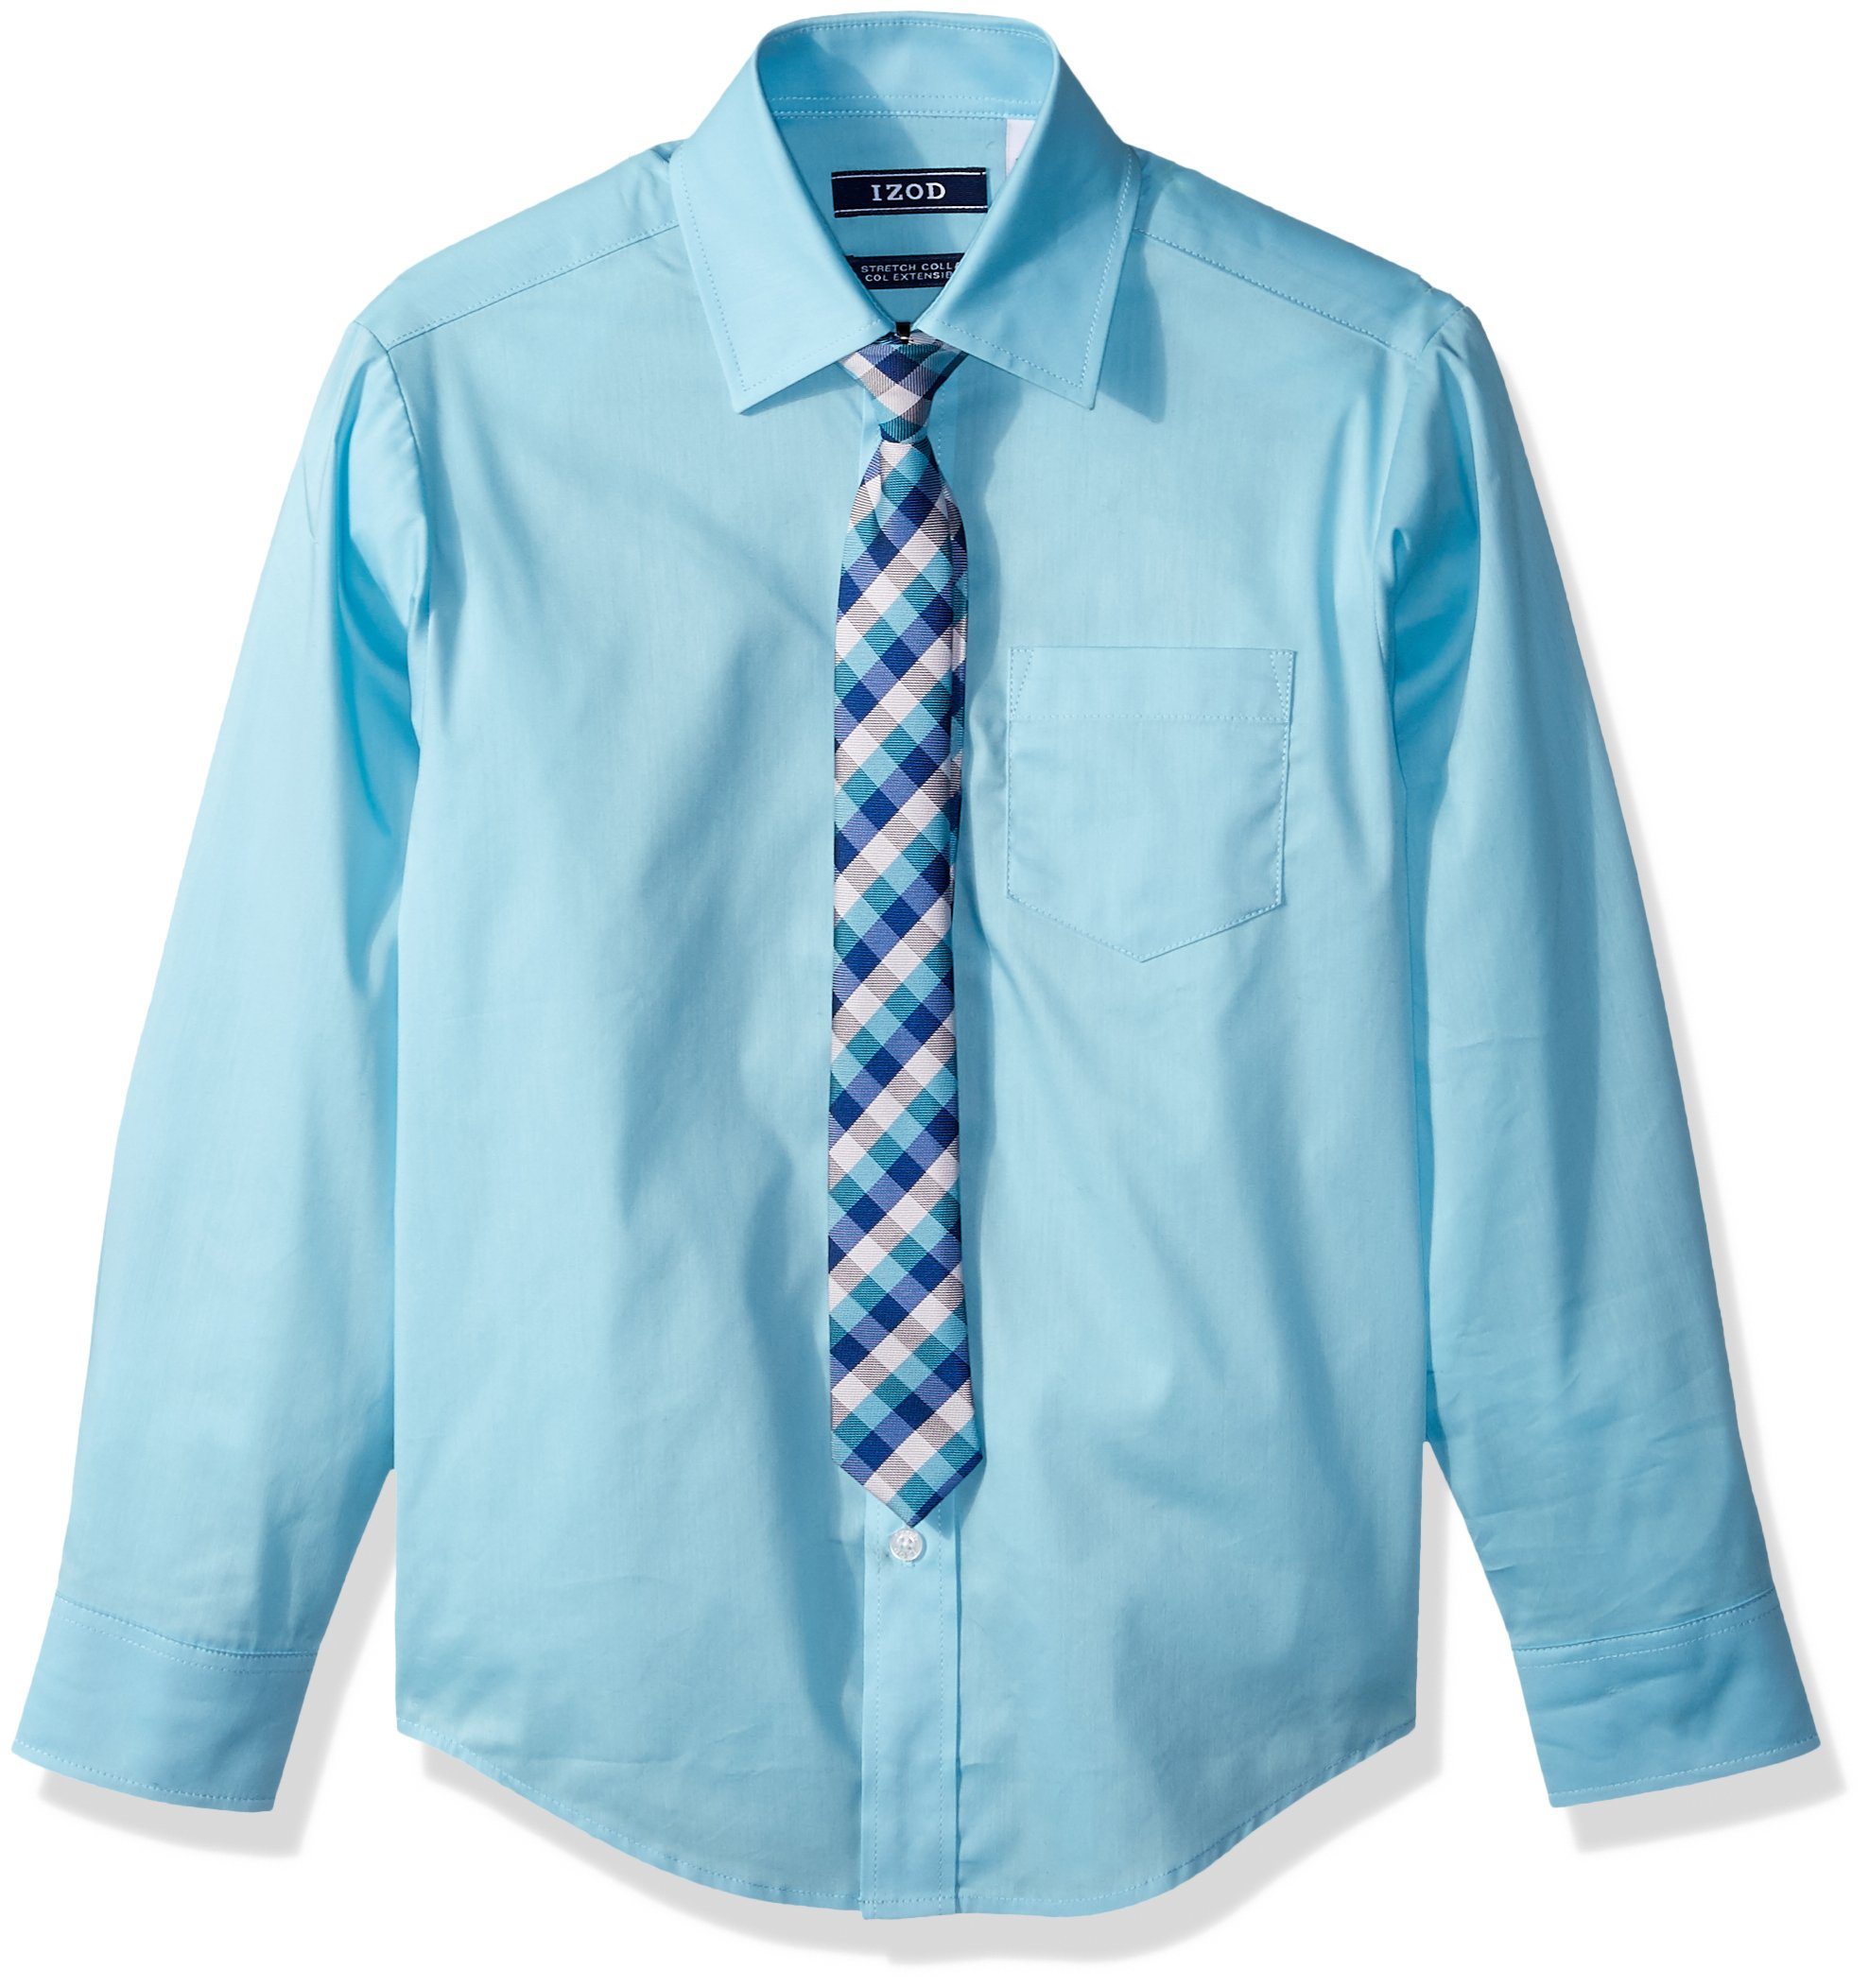 IZOD Big Boys' Dress Shirt and Tie Set, Nafpak Blue, 12